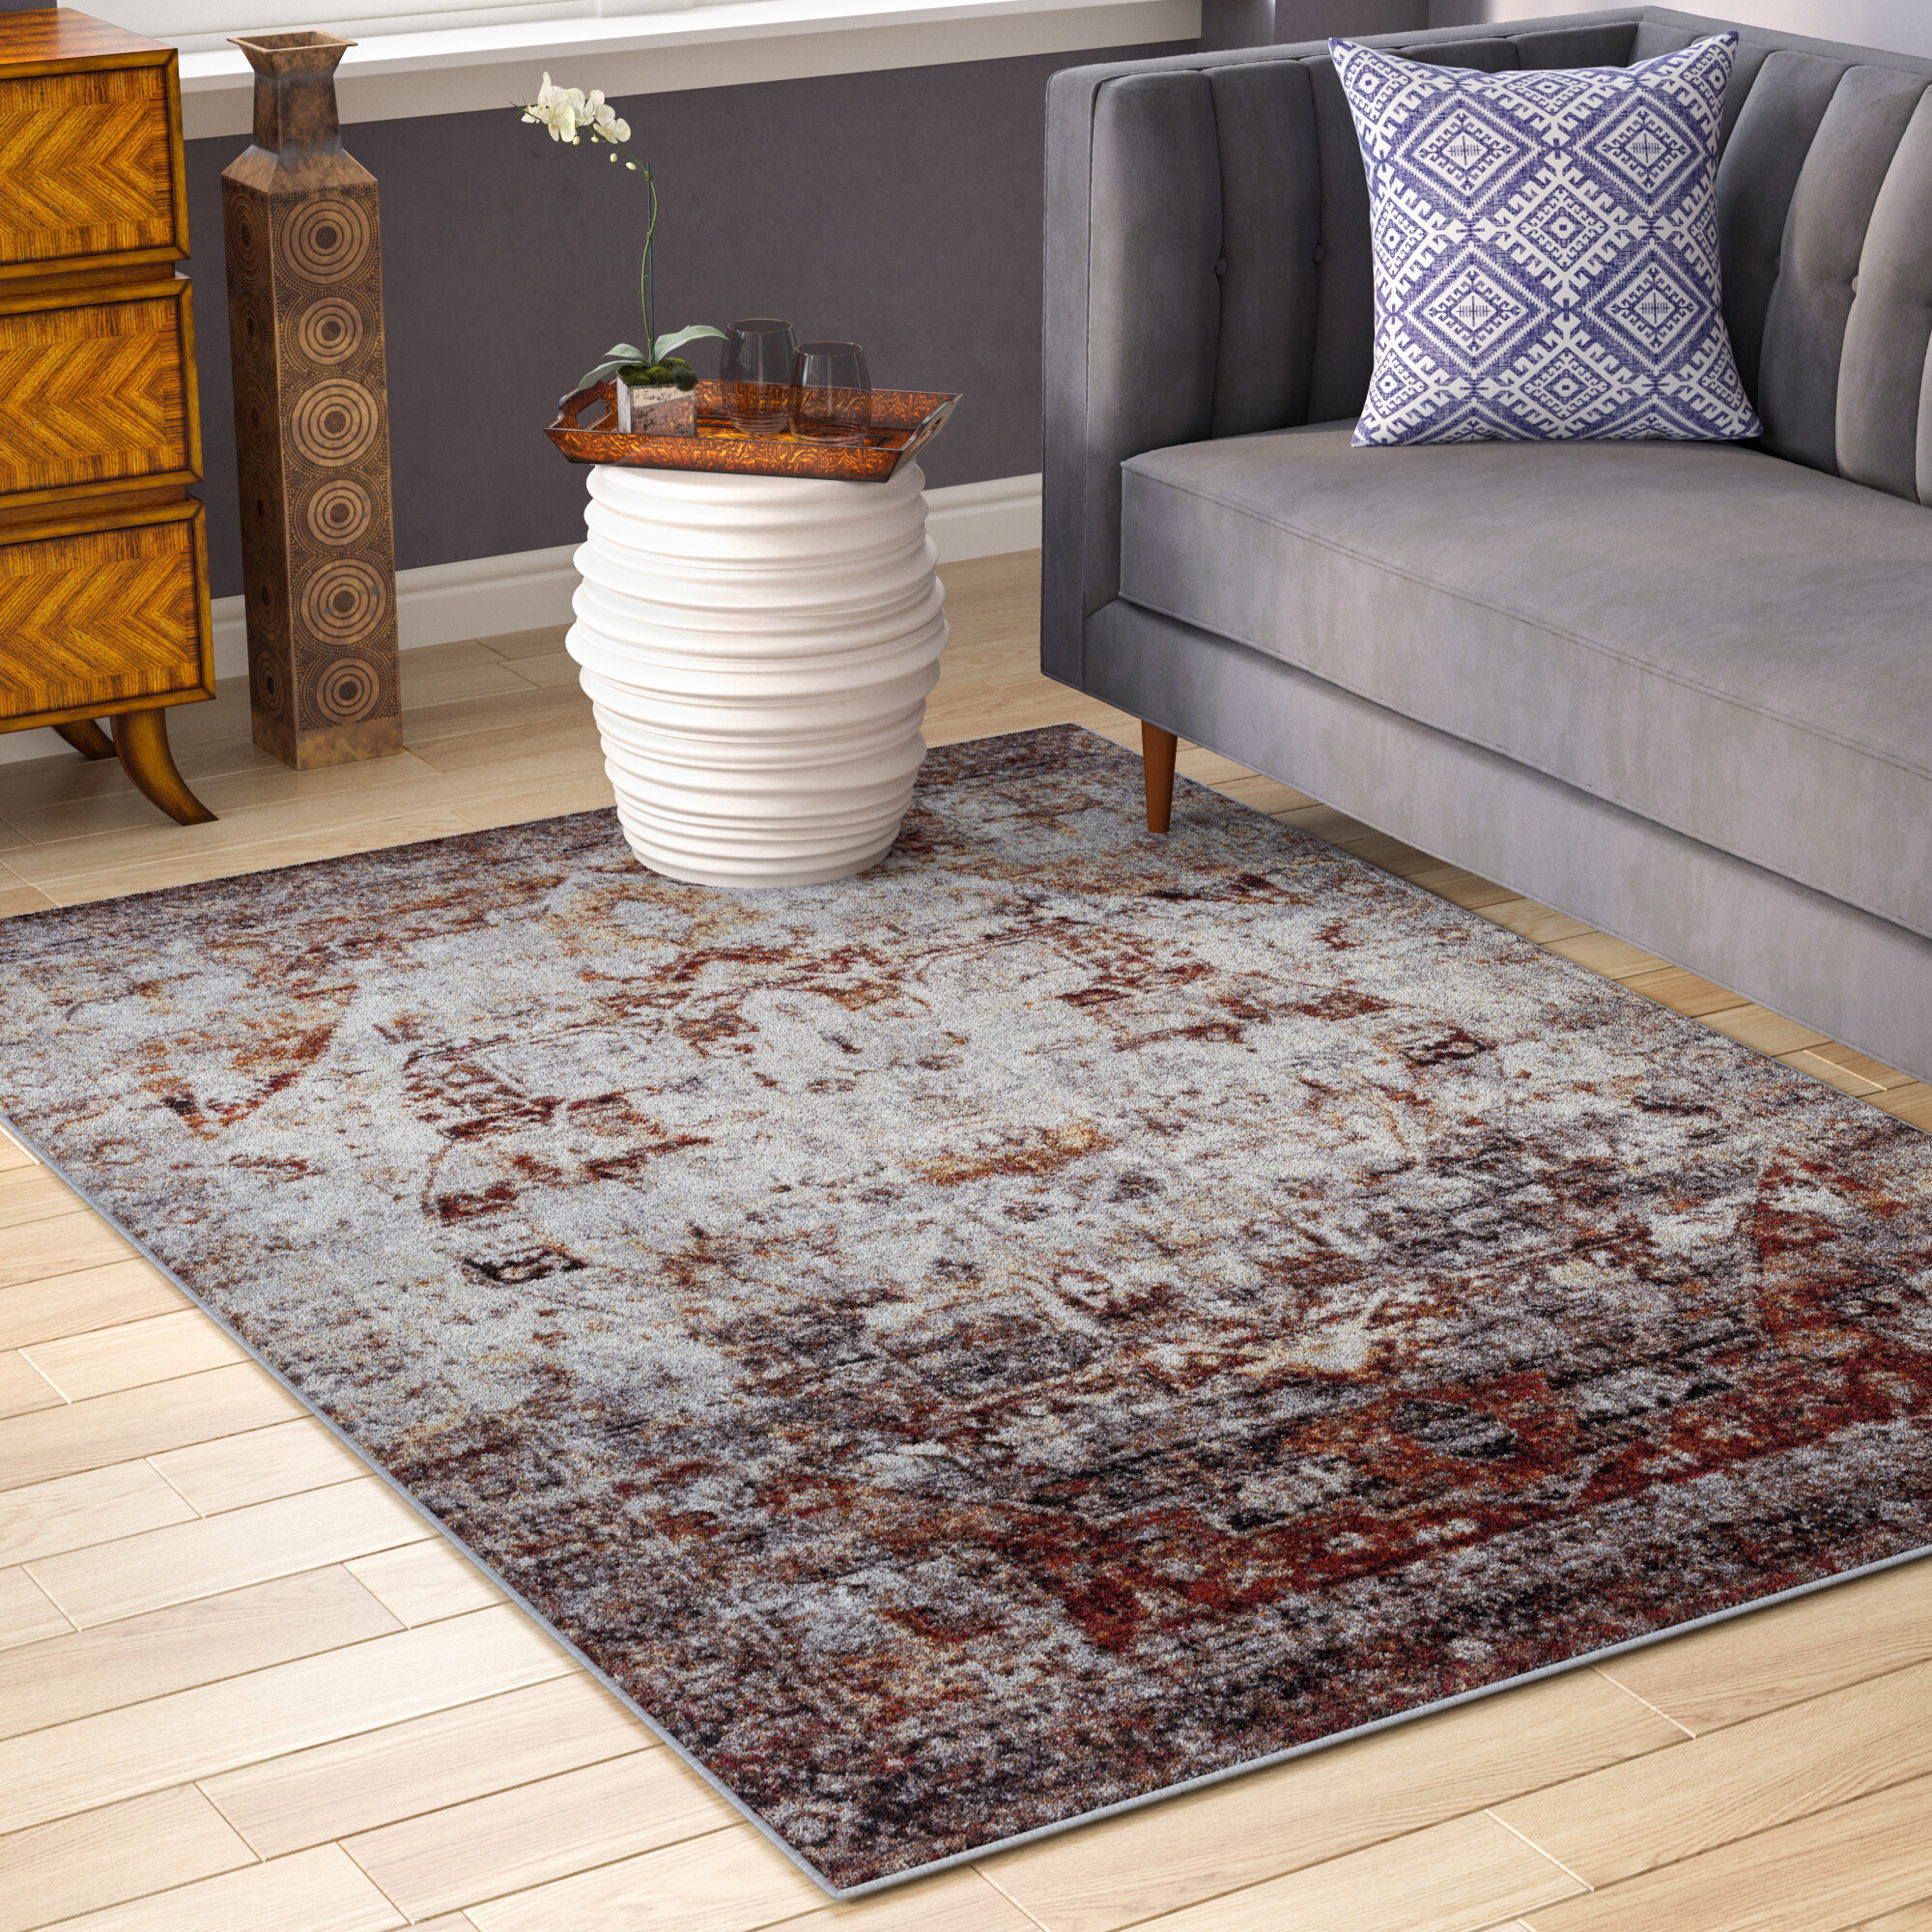 spaces room area decorate rug ideas design image for rugs best living tips